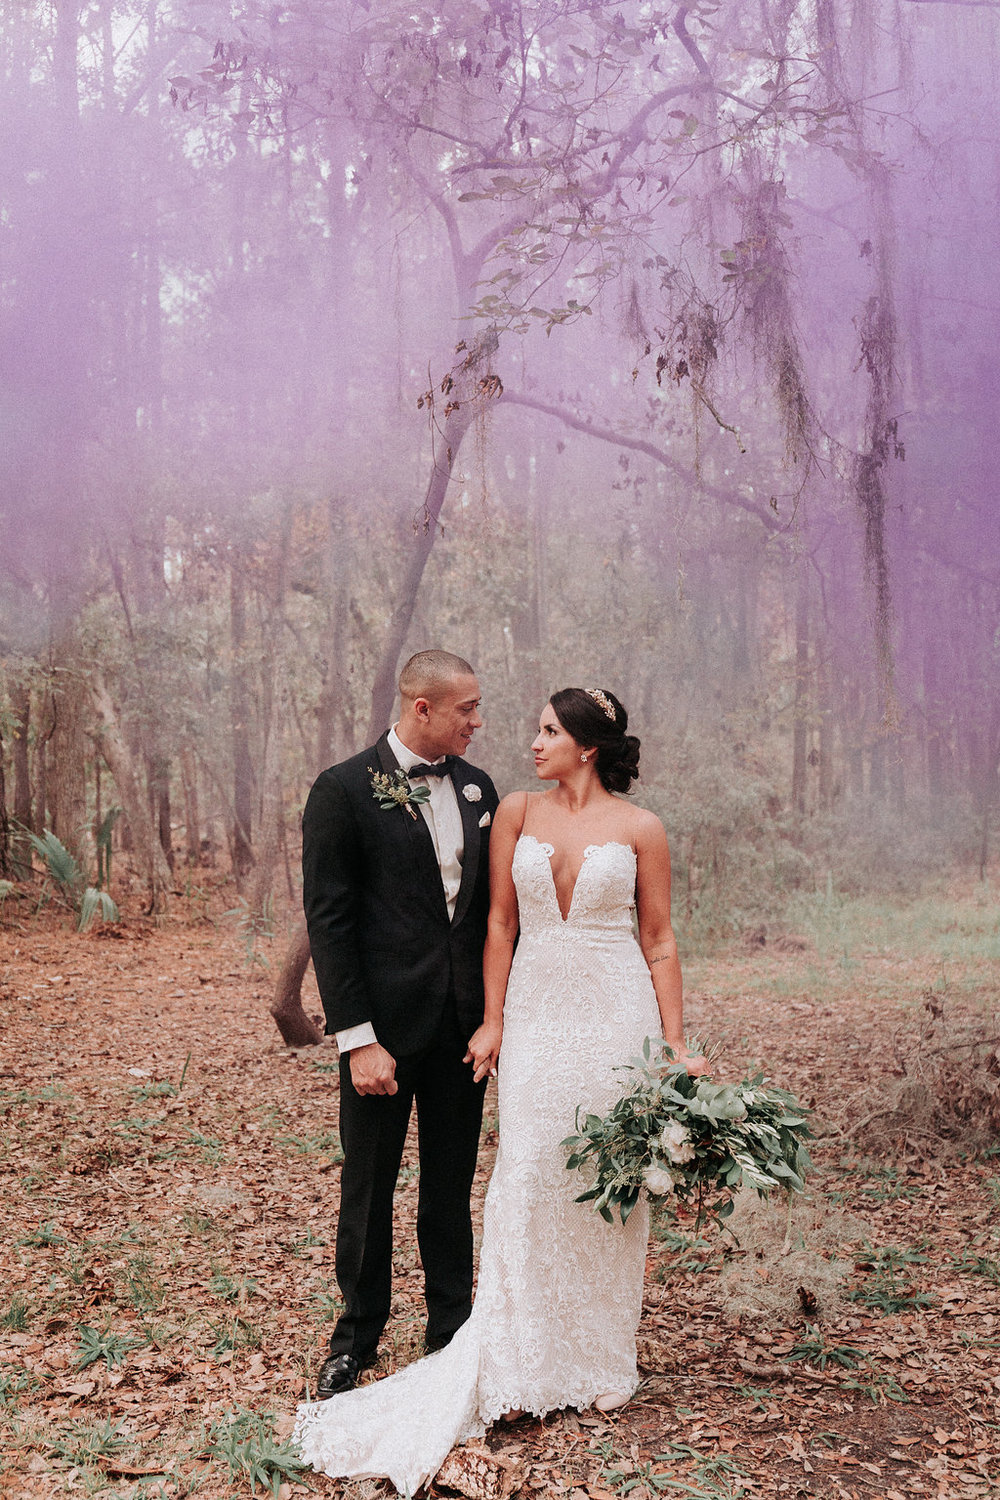 ivory-and-beau-savannah-bridal-shop-ivory-and-beau-couple-caitlin-and-tim-wormsloe-wedding-savannah-wedding-florist-house-of-ivory-photography-27.jpg